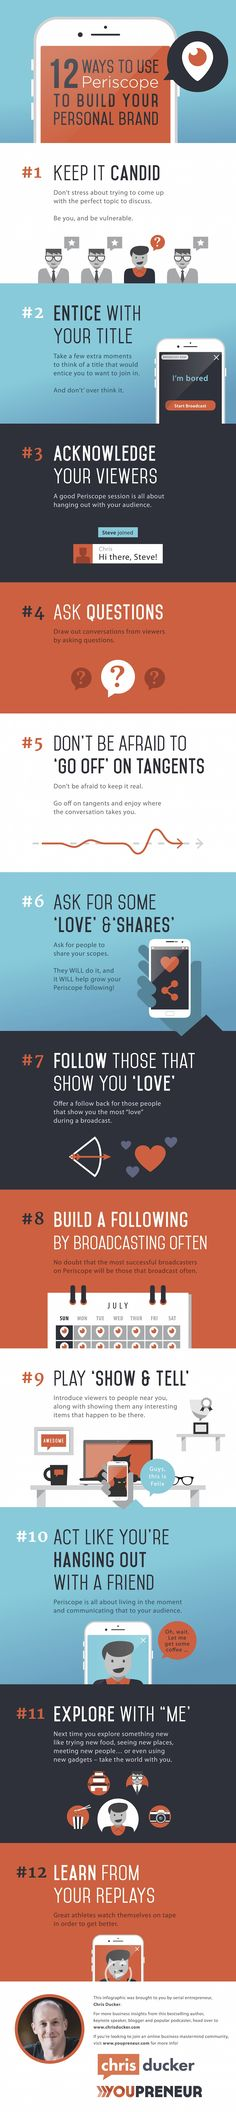 How to Use Periscope to Build Your Personal Brand [Infographic] | Social Media Today